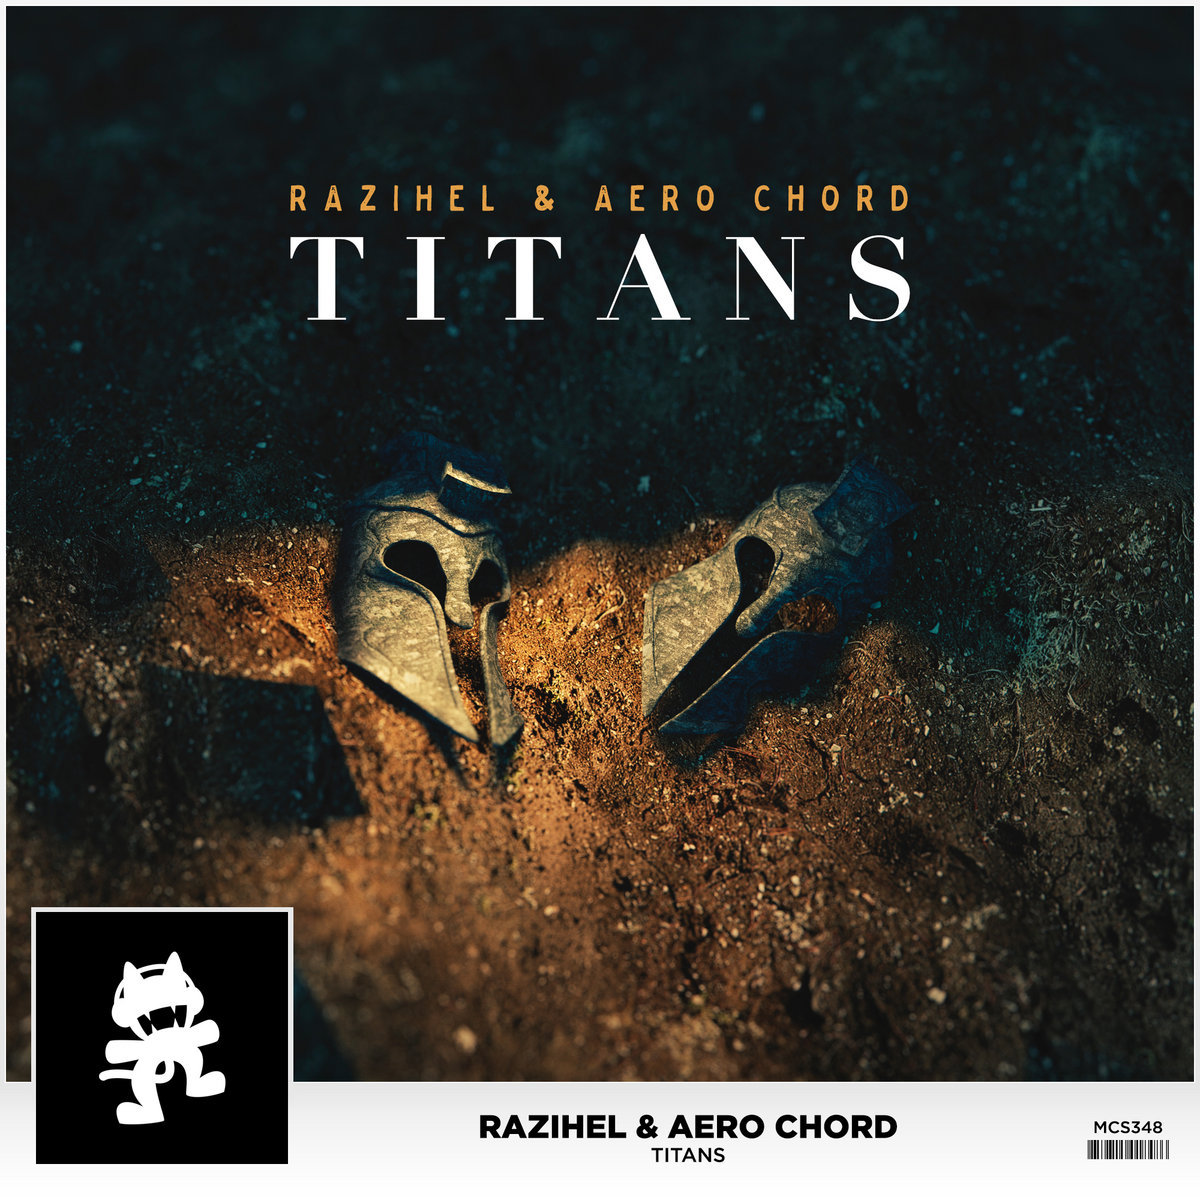 titans razihel and aero chord